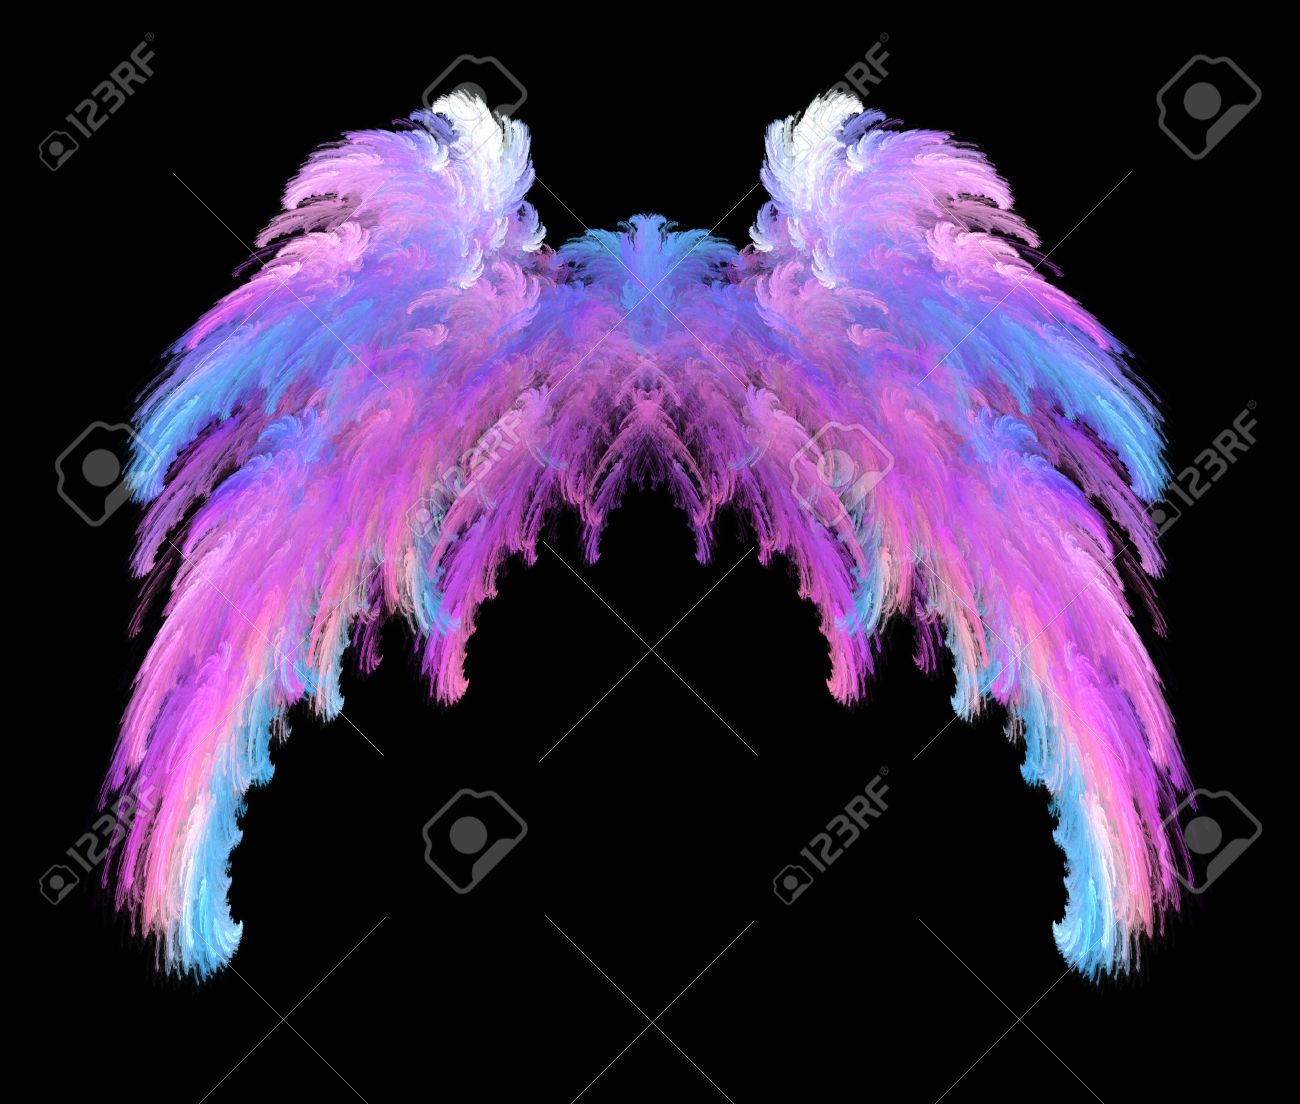 Pretty pink, blue and white feathery wings over black background. Stock Photo - 6828306